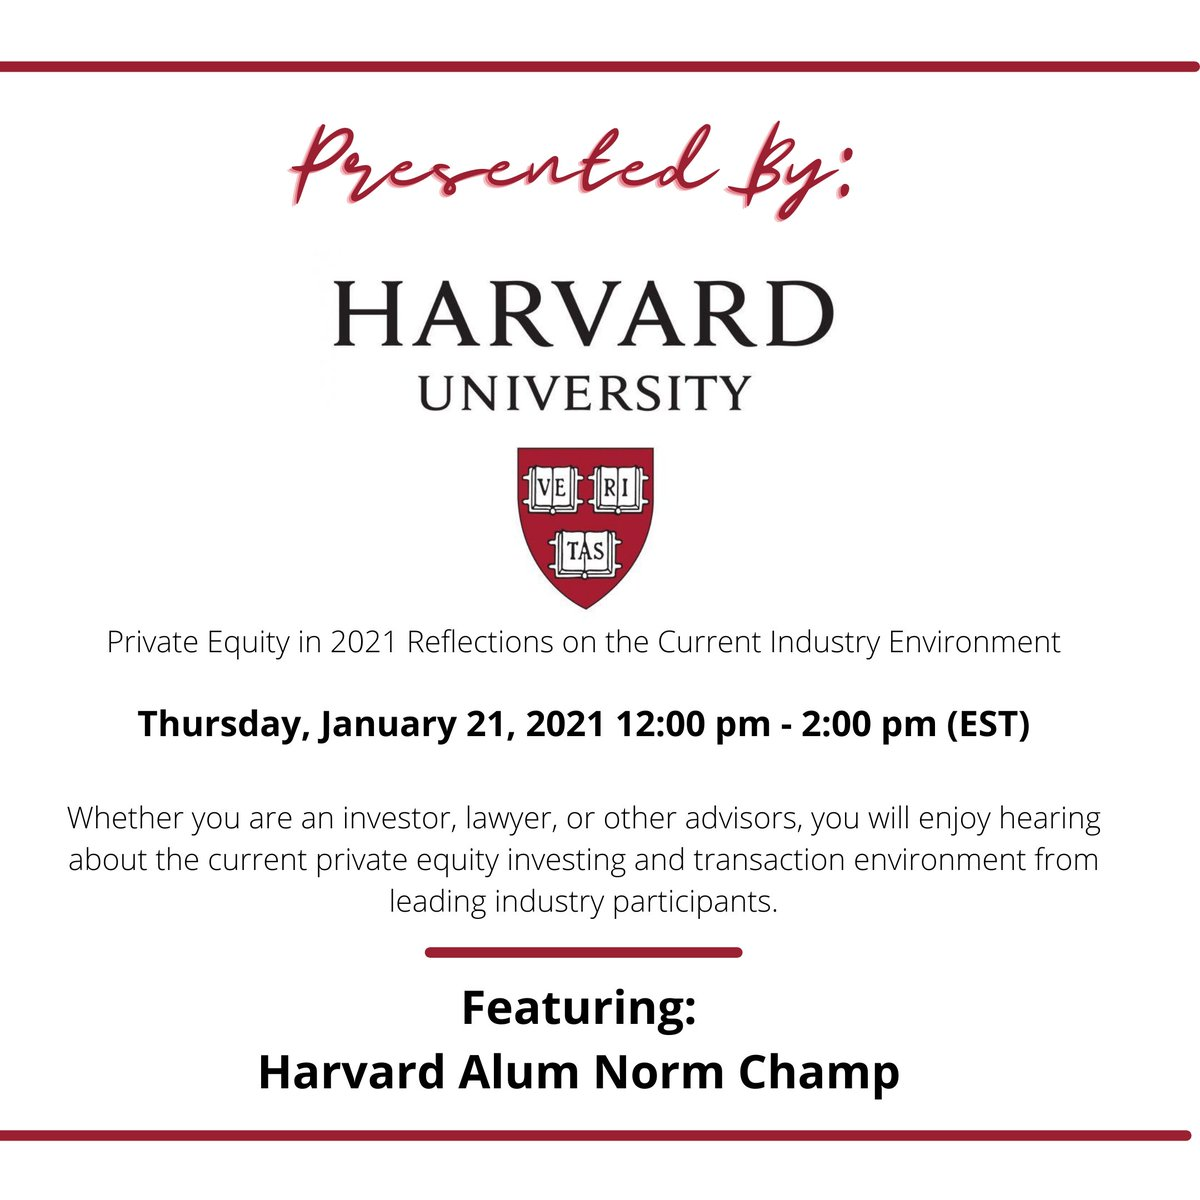 Very excited to speak on this panel discussion at my alma marter @Harvard RSVP Here:  #harvard #harvardUniversity #business #nycbusiness #COVIDbusinesses #COVIDaffected #tech #fintech #evolution